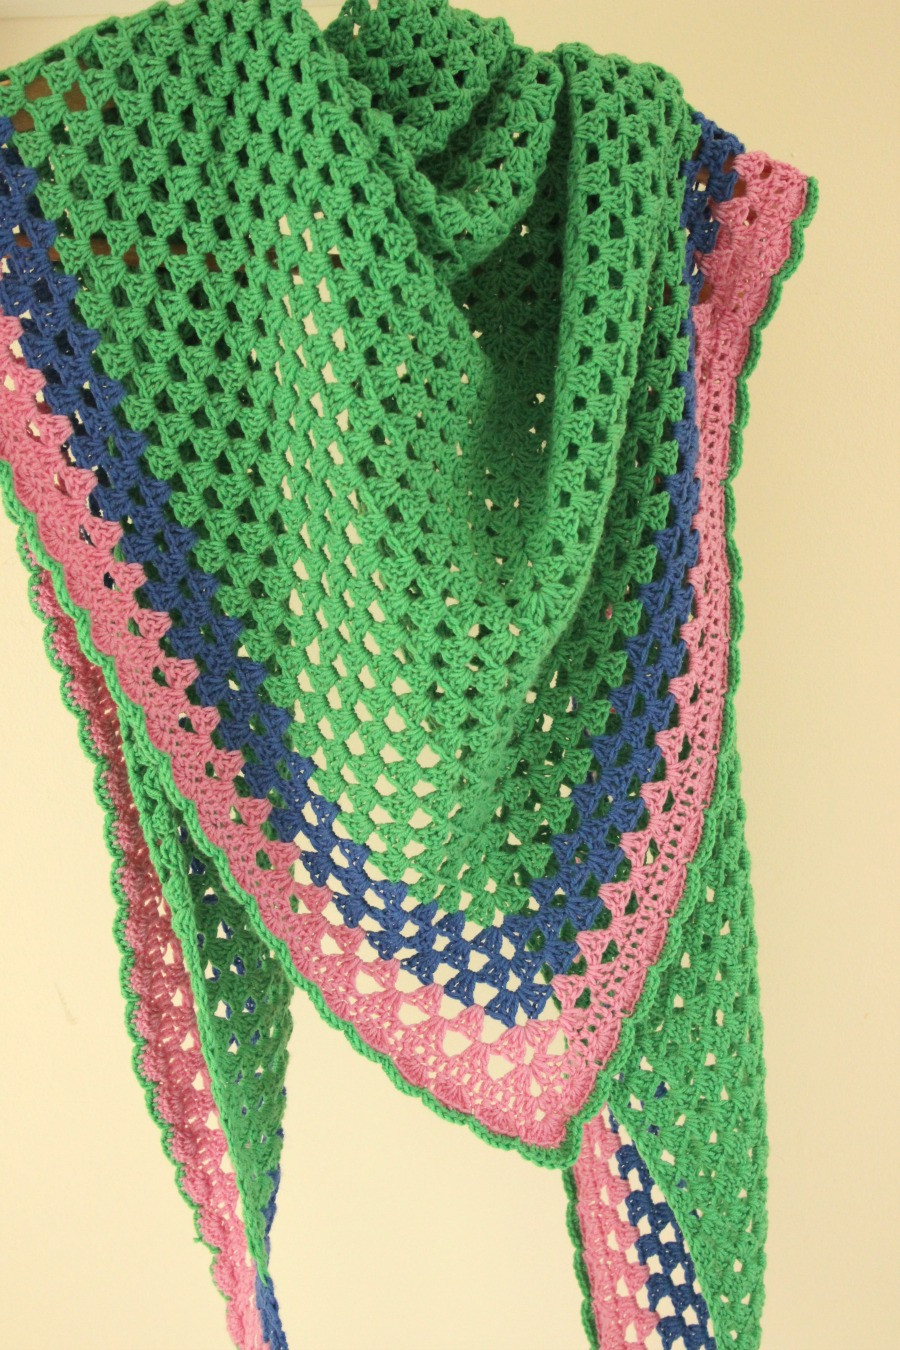 Shawl Patterns Unique Another Granny Triangle Shawl – Zeens and Roger Of Luxury 45 Images Shawl Patterns